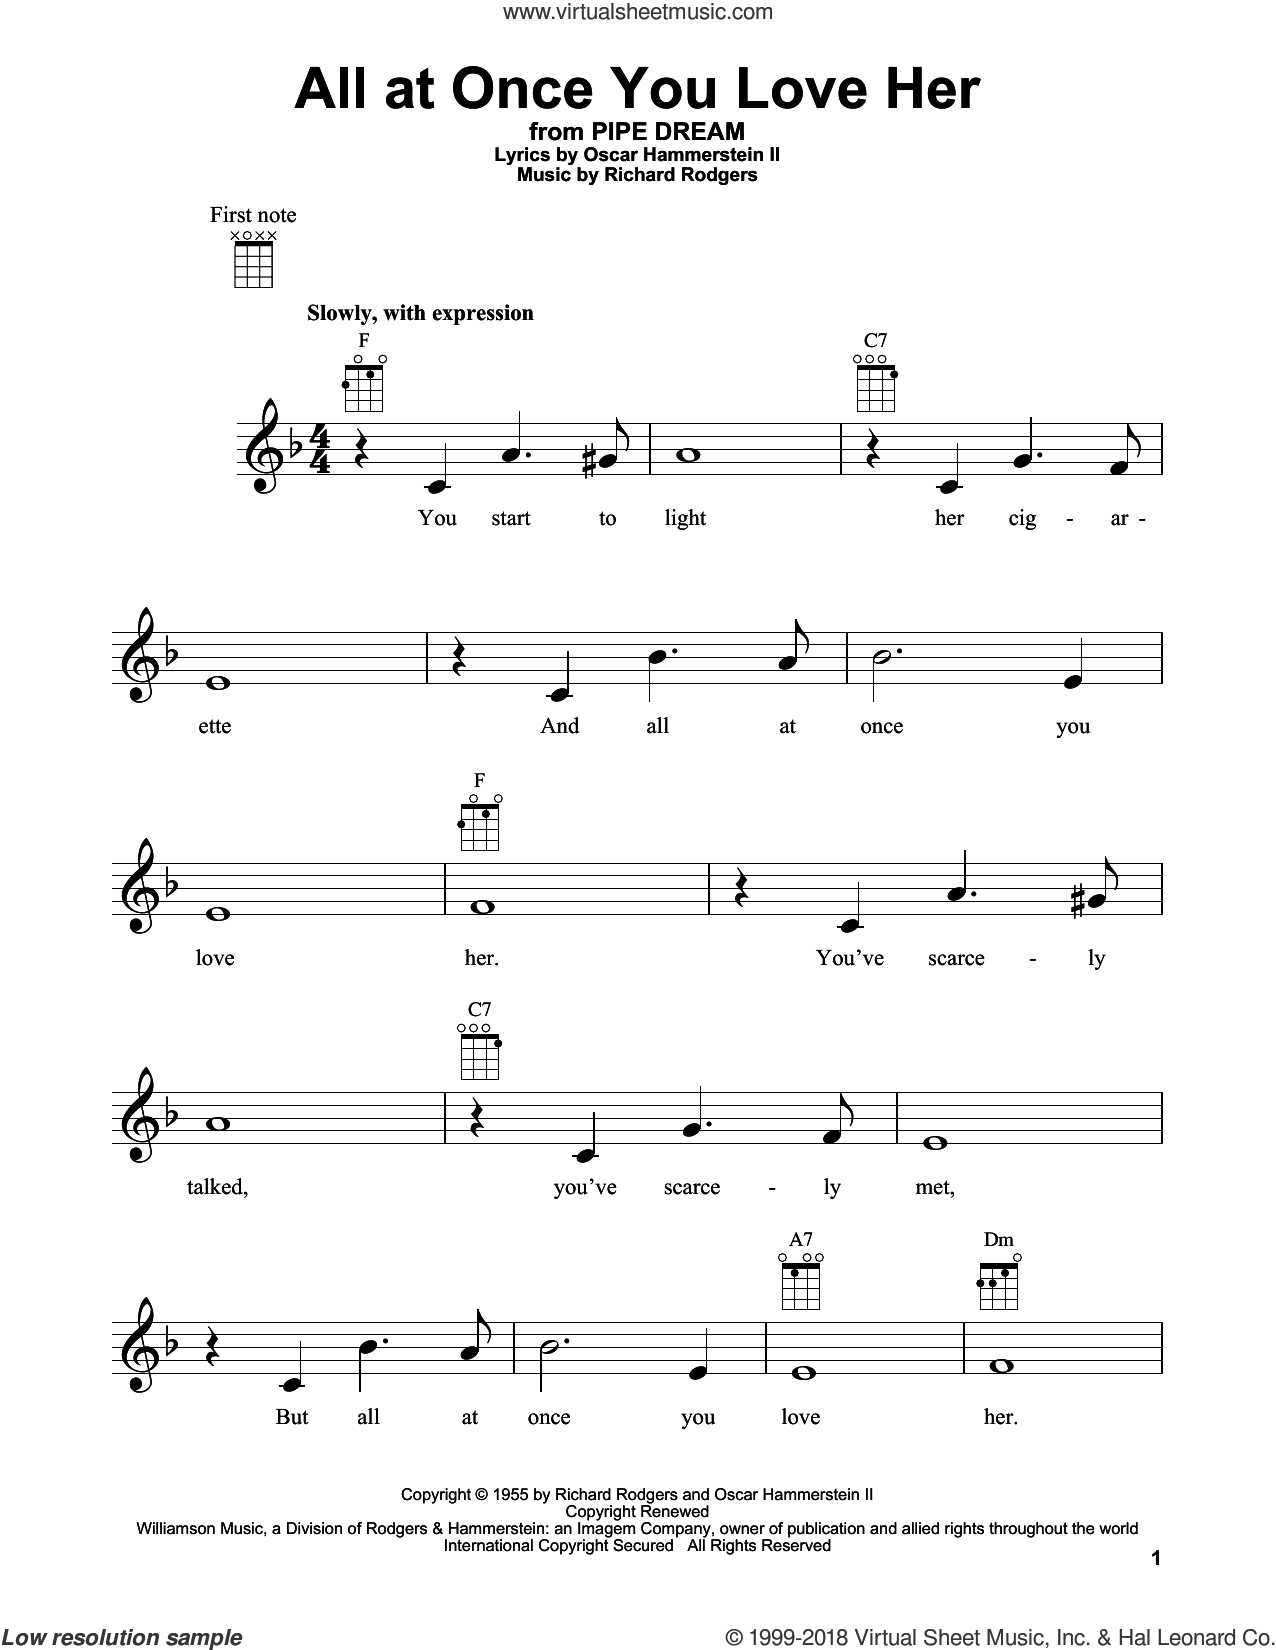 All At Once You Love Her sheet music for ukulele by Richard Rodgers, Perry Como, Rodgers & Hammerstein and Oscar II Hammerstein. Score Image Preview.